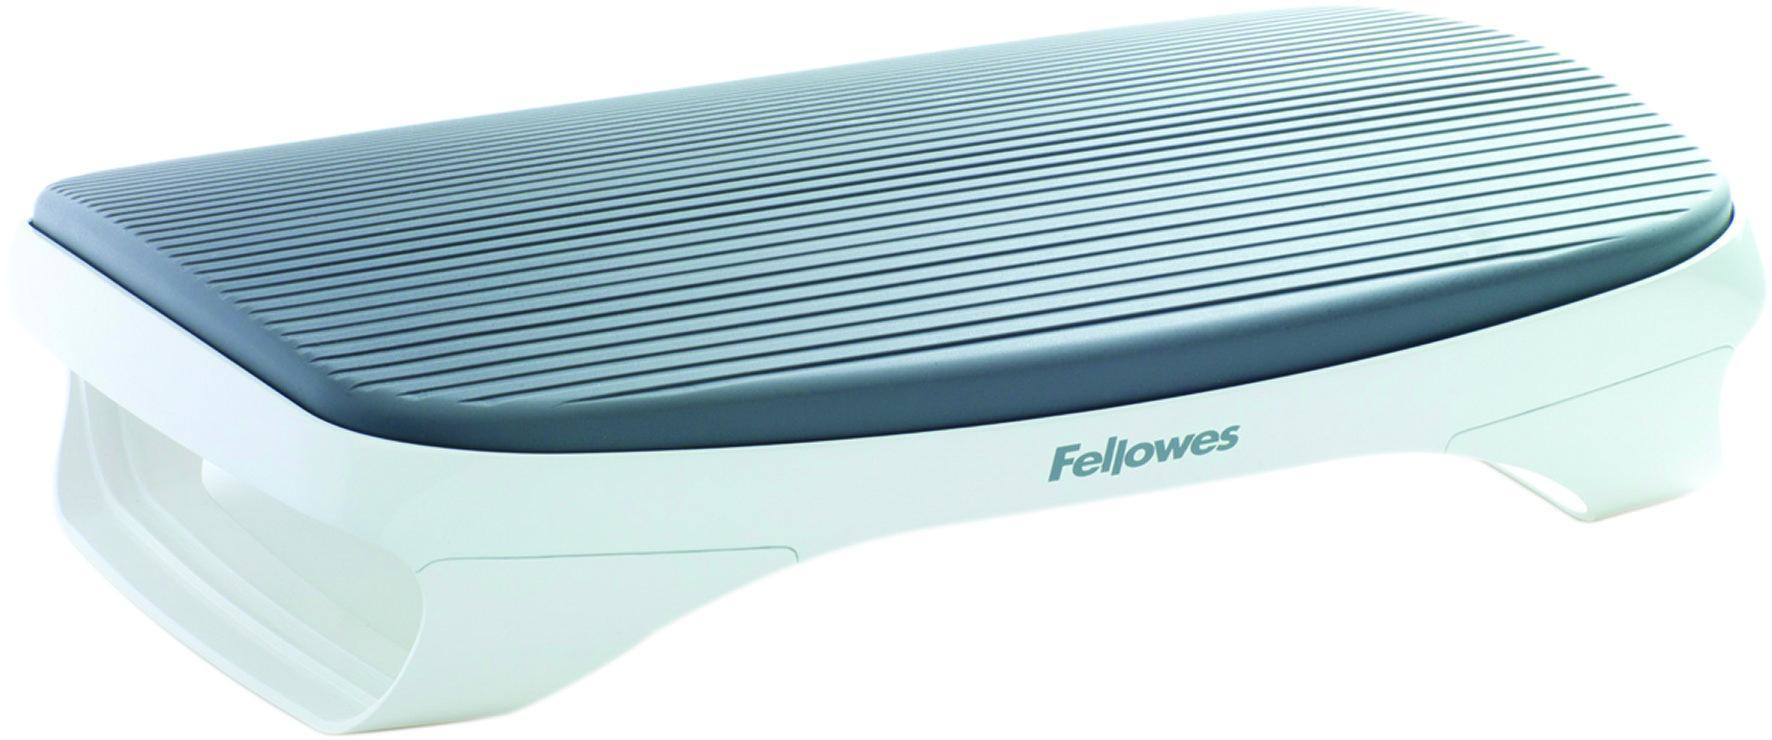 Fellowes Ispire Foot Lift White/grey 9361701 - WC01